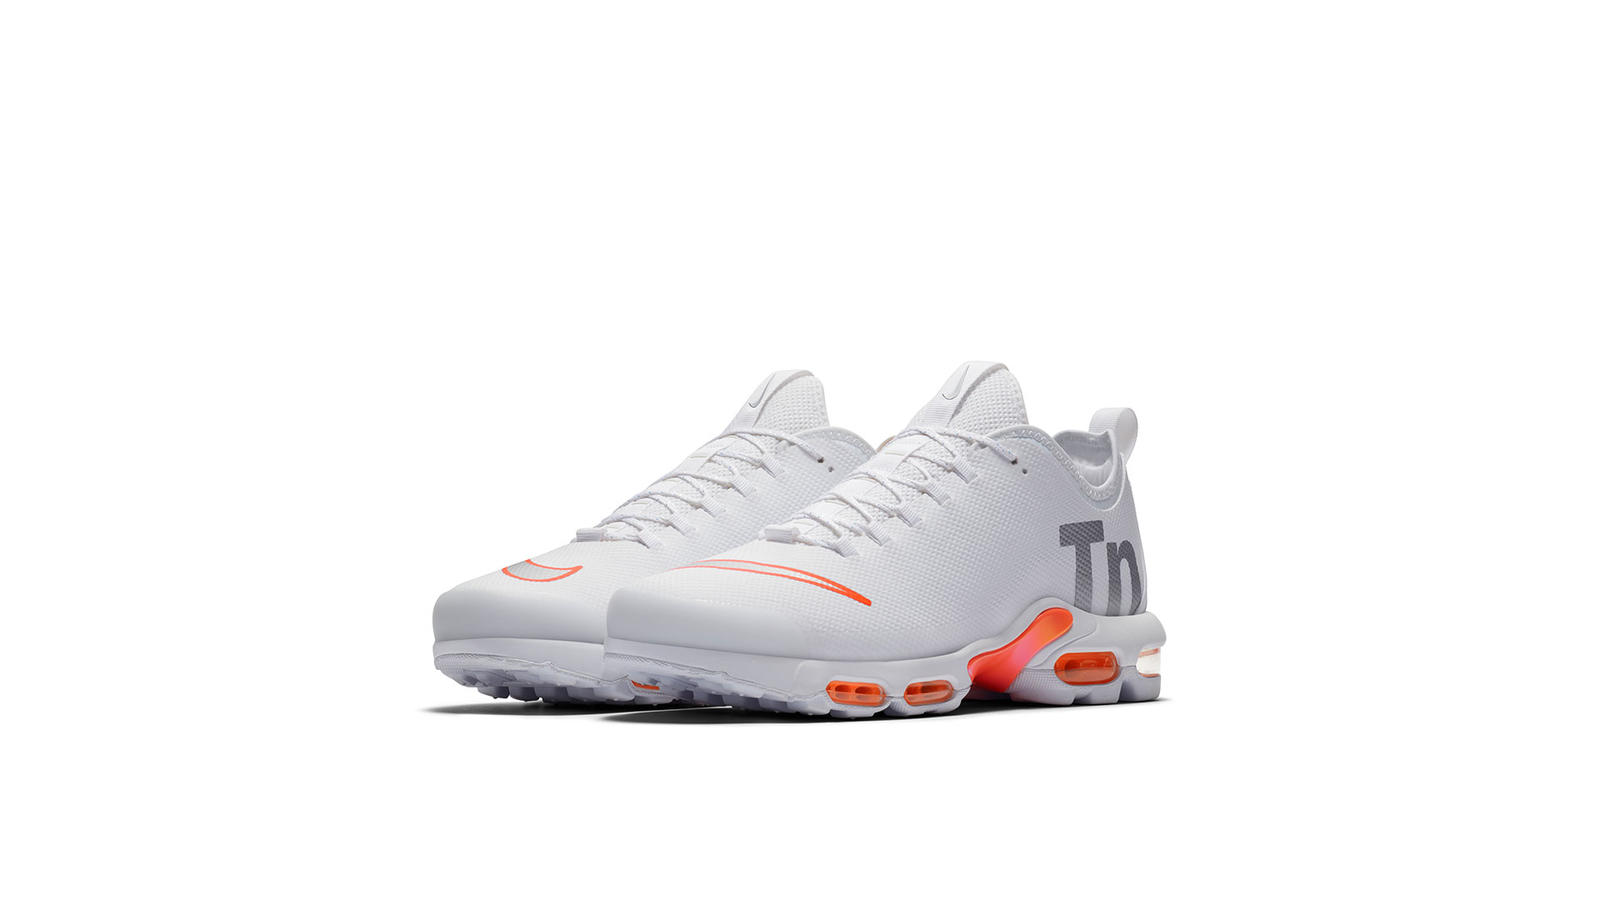 finest selection e0985 8ba29 Nike Mercurial TN - Nike News